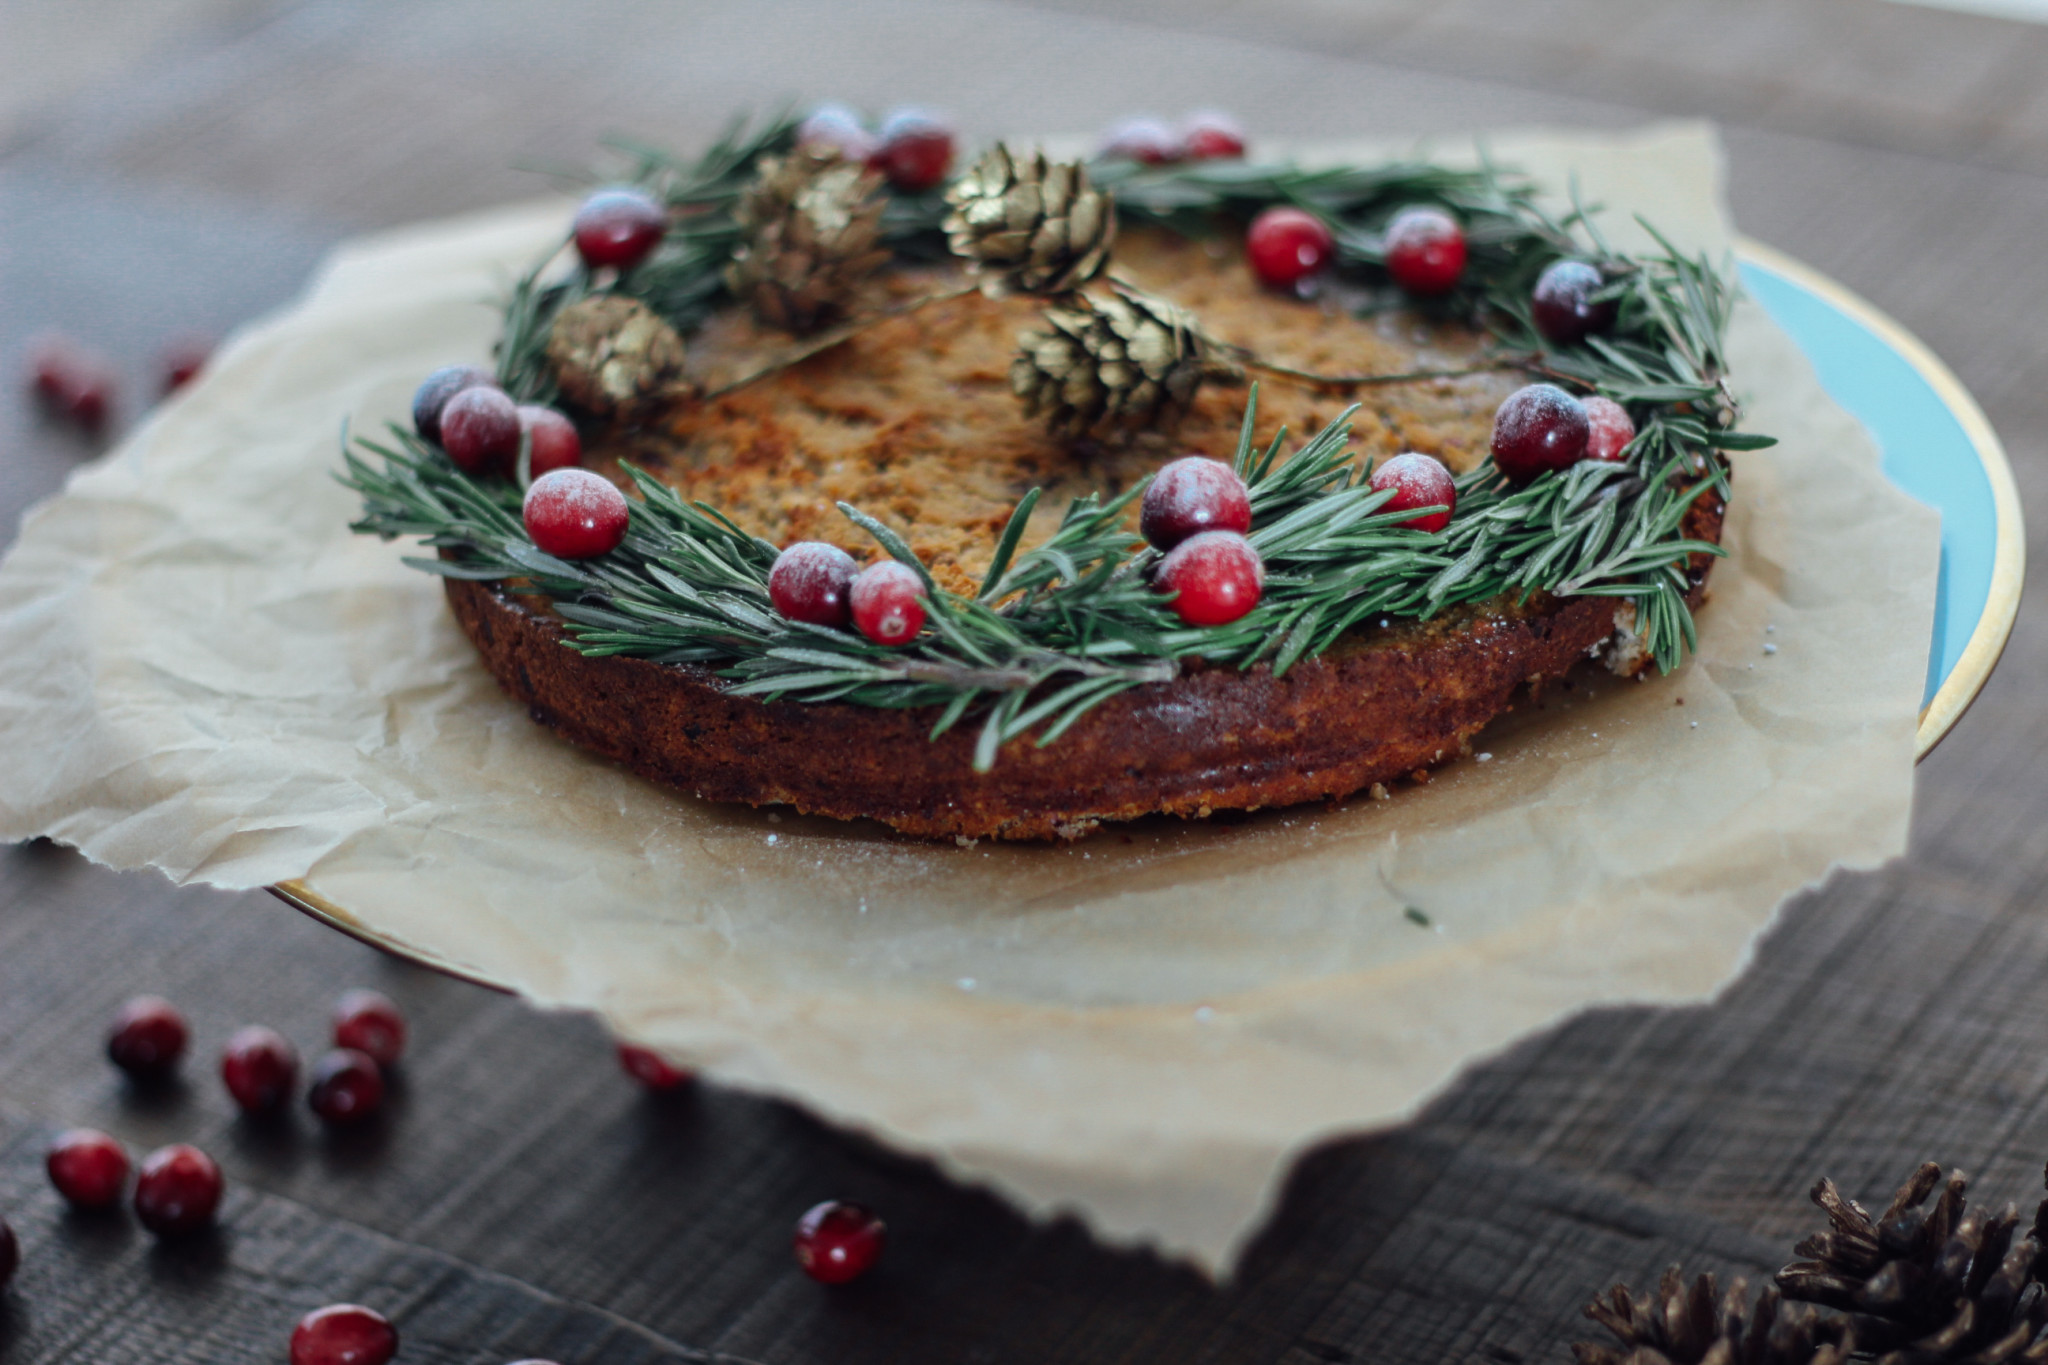 Vegan gluten-free cranberry cake recipe